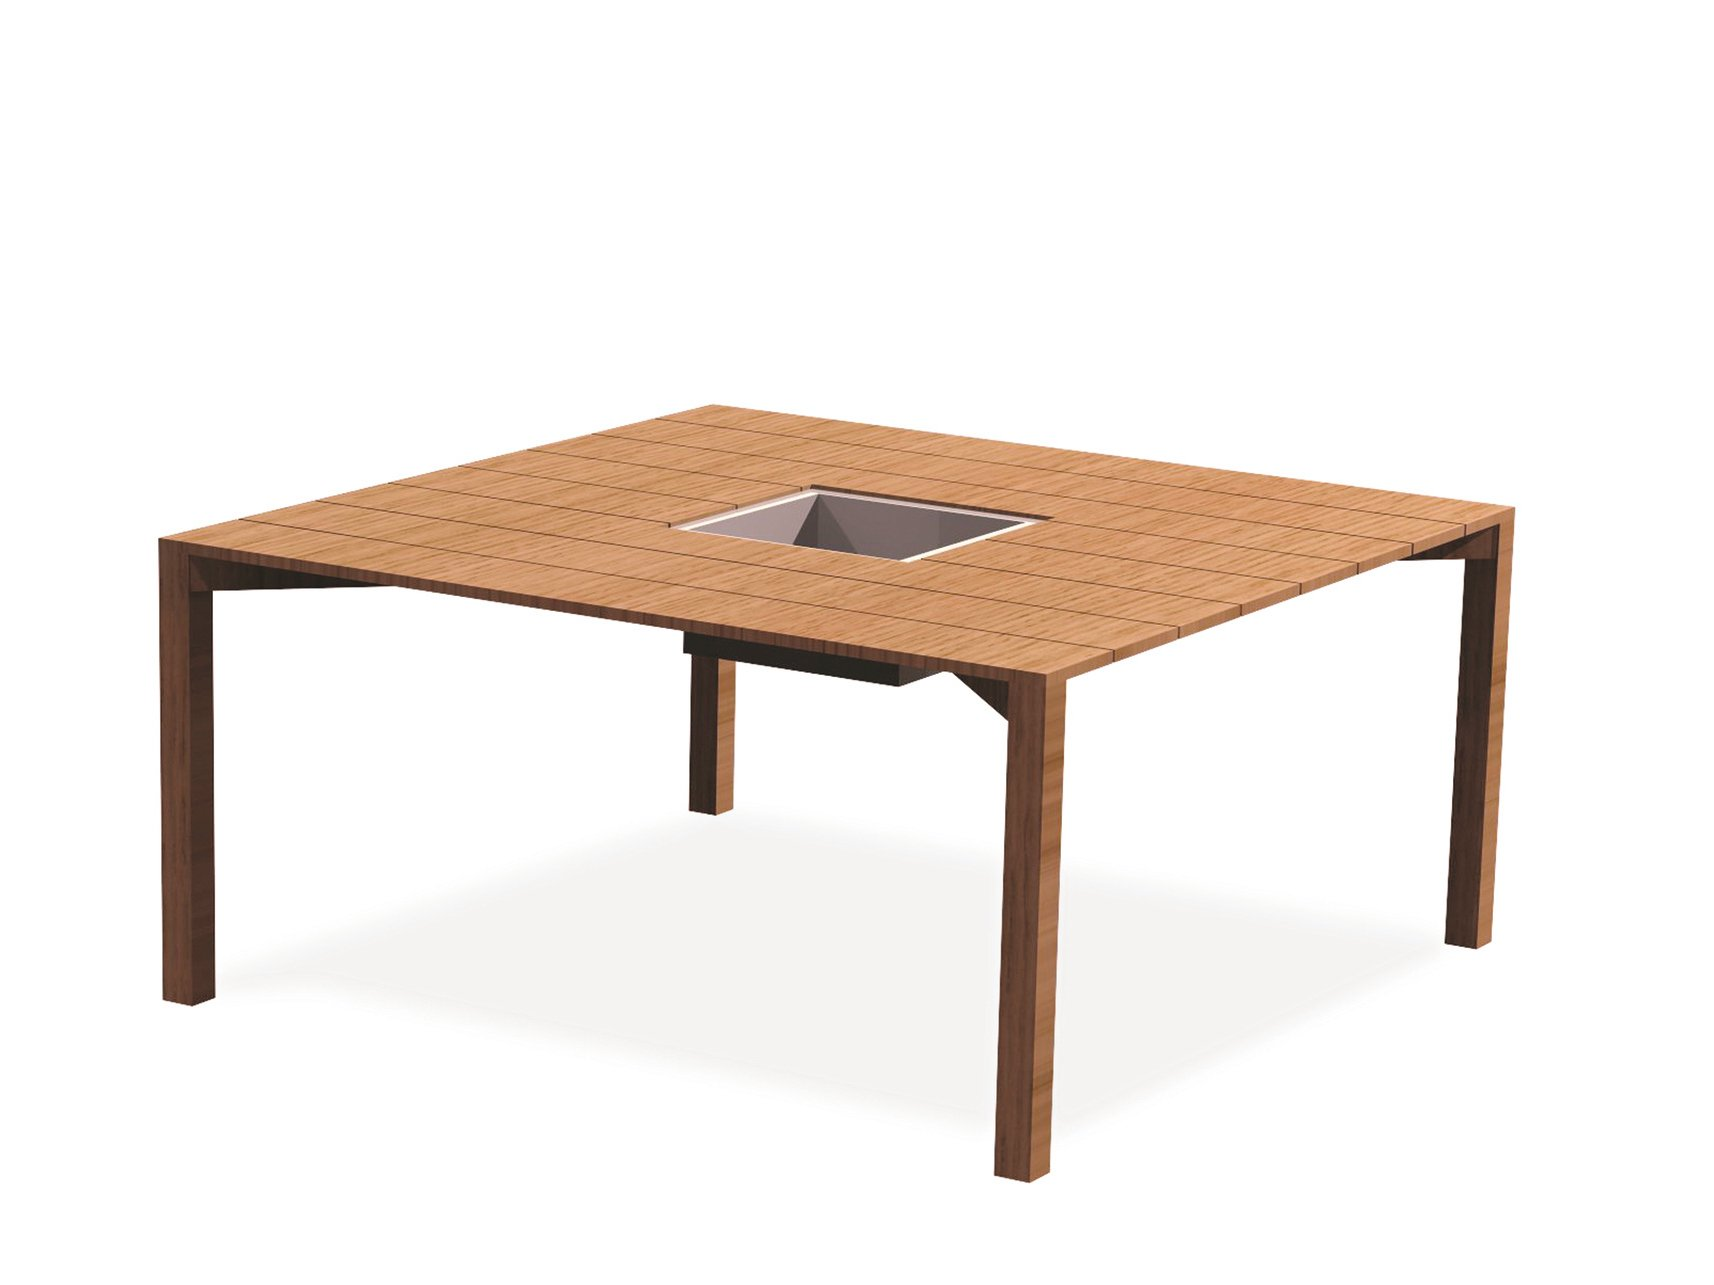 Table de jardin carr e en teck oxn collection oxn by - Table en teck exterieur ...